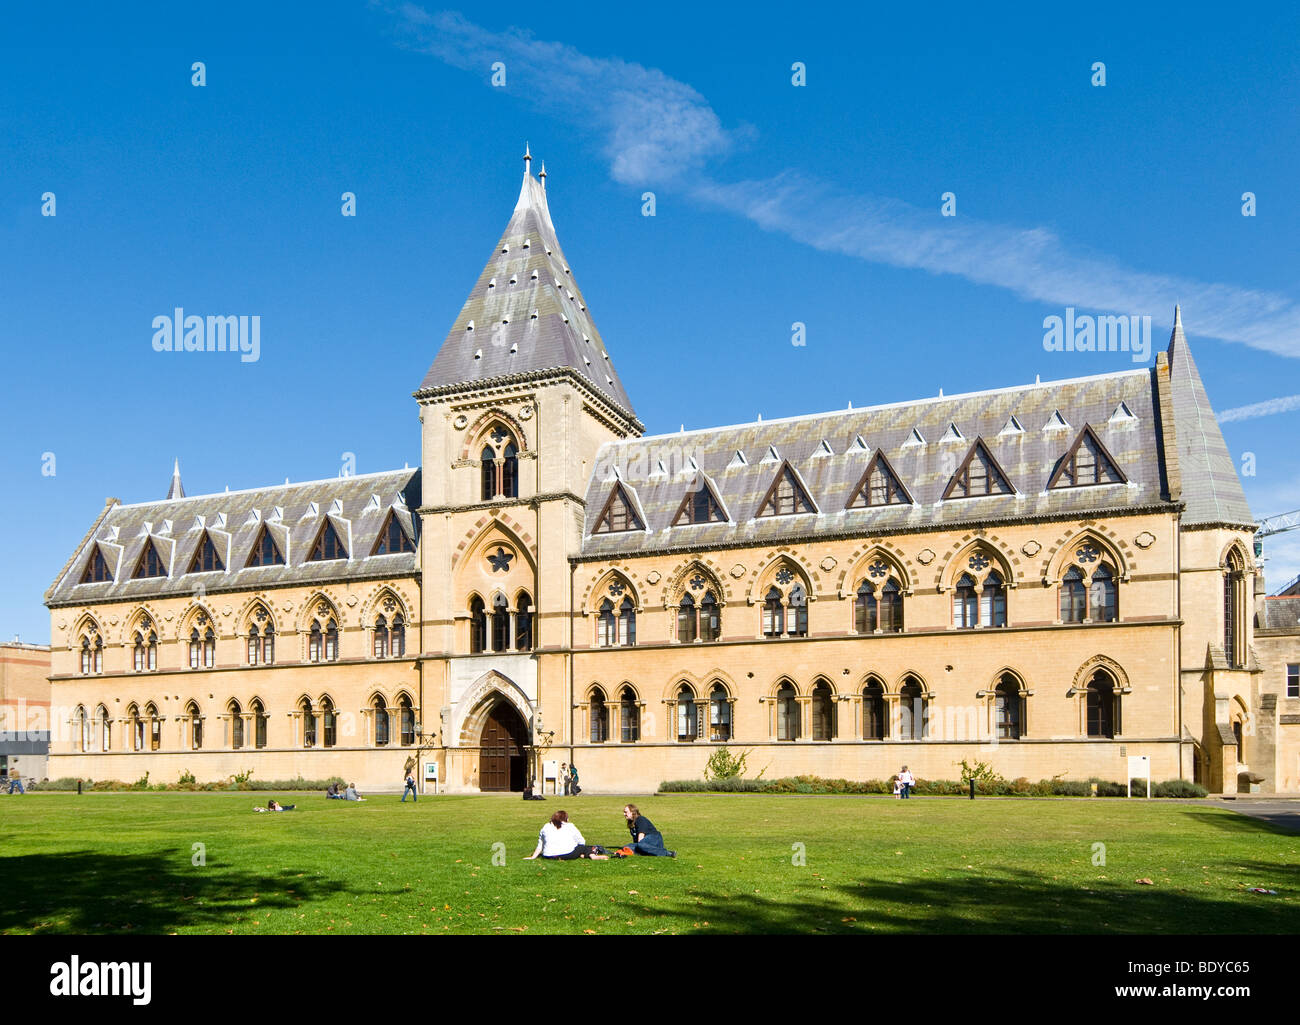 The Oxford University Museum of Natural History and Pitt Rivers Museum, Oxford, England - Stock Image